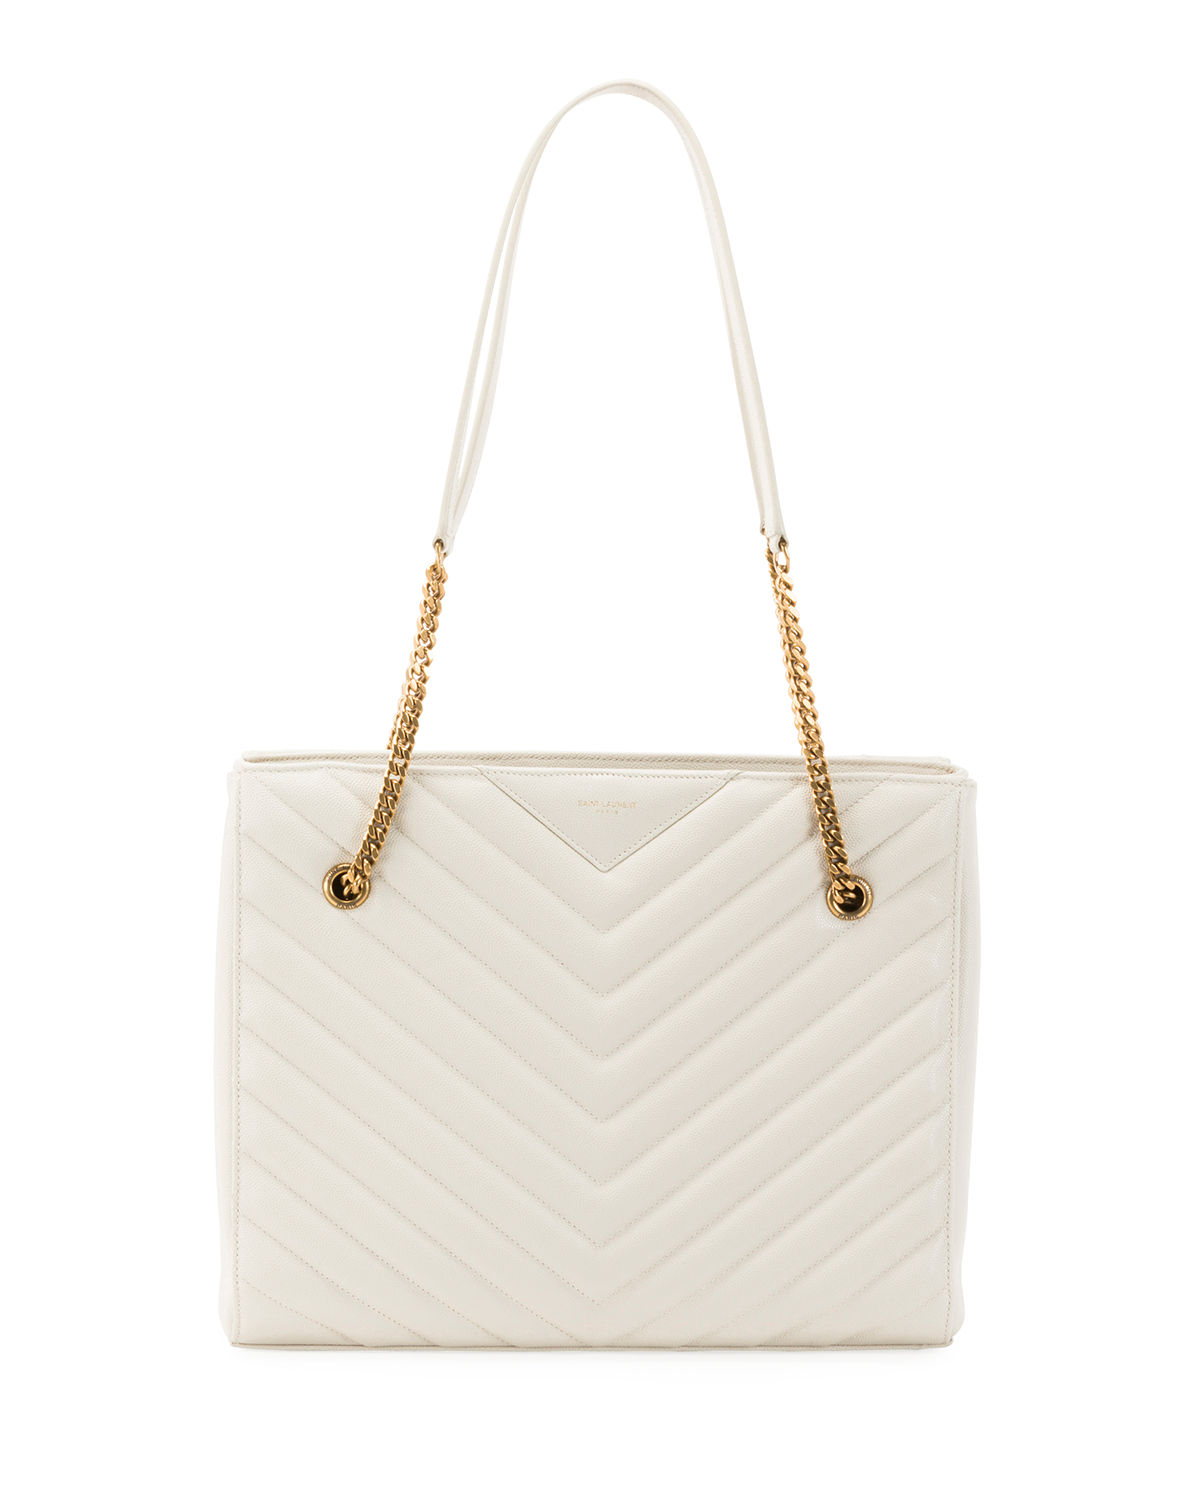 Saint Laurent Shoulder TRIBECA MEDIUM DOUBLE CHAIN SHOULDER BAG